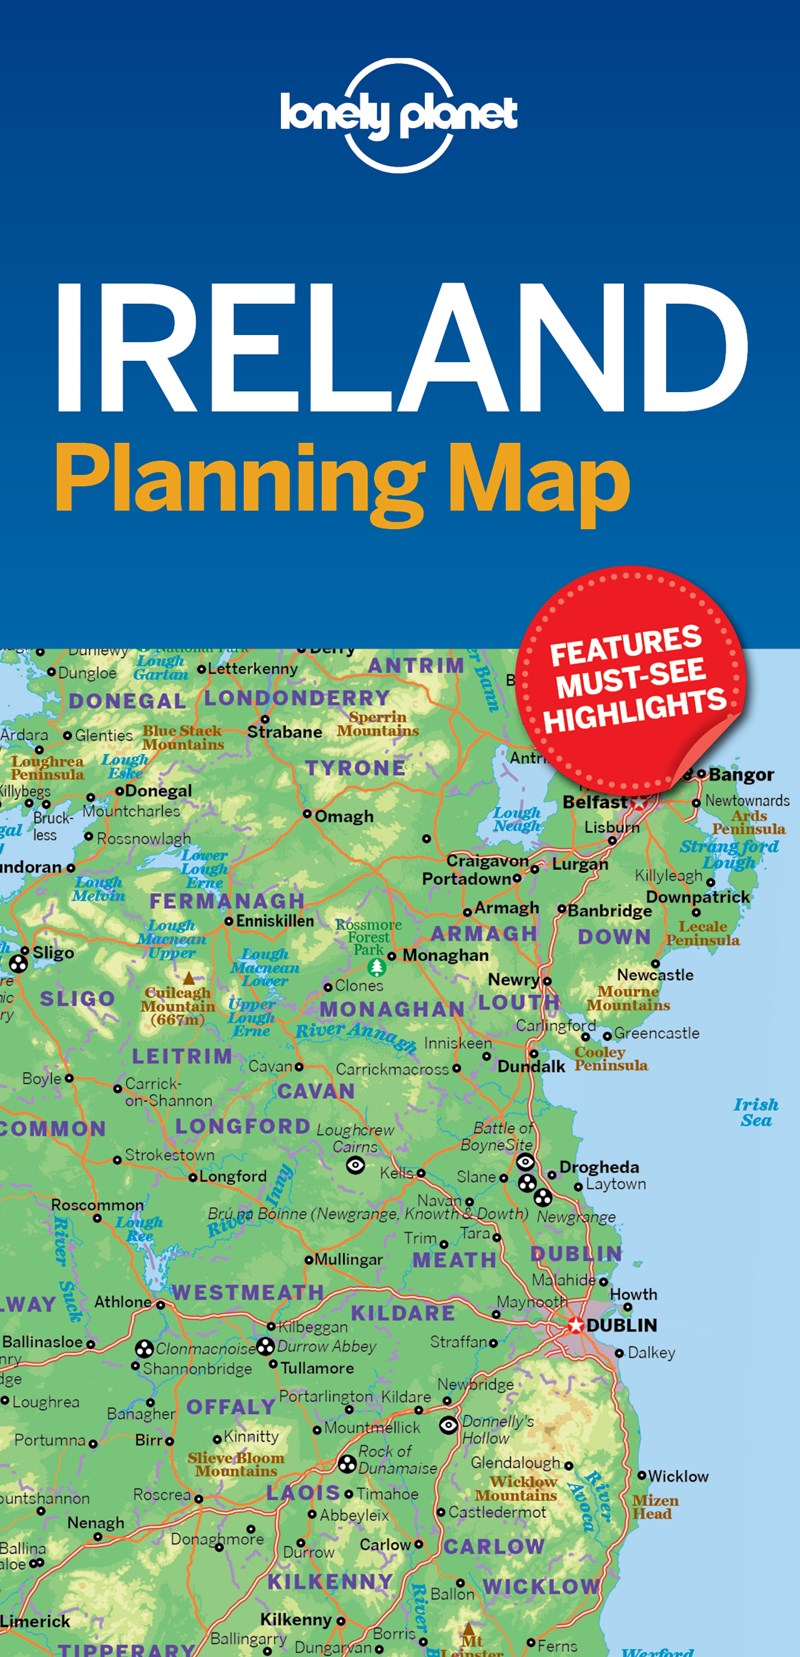 New Ireland Planning Map By Lonely Planet 9781787014541 Ebay